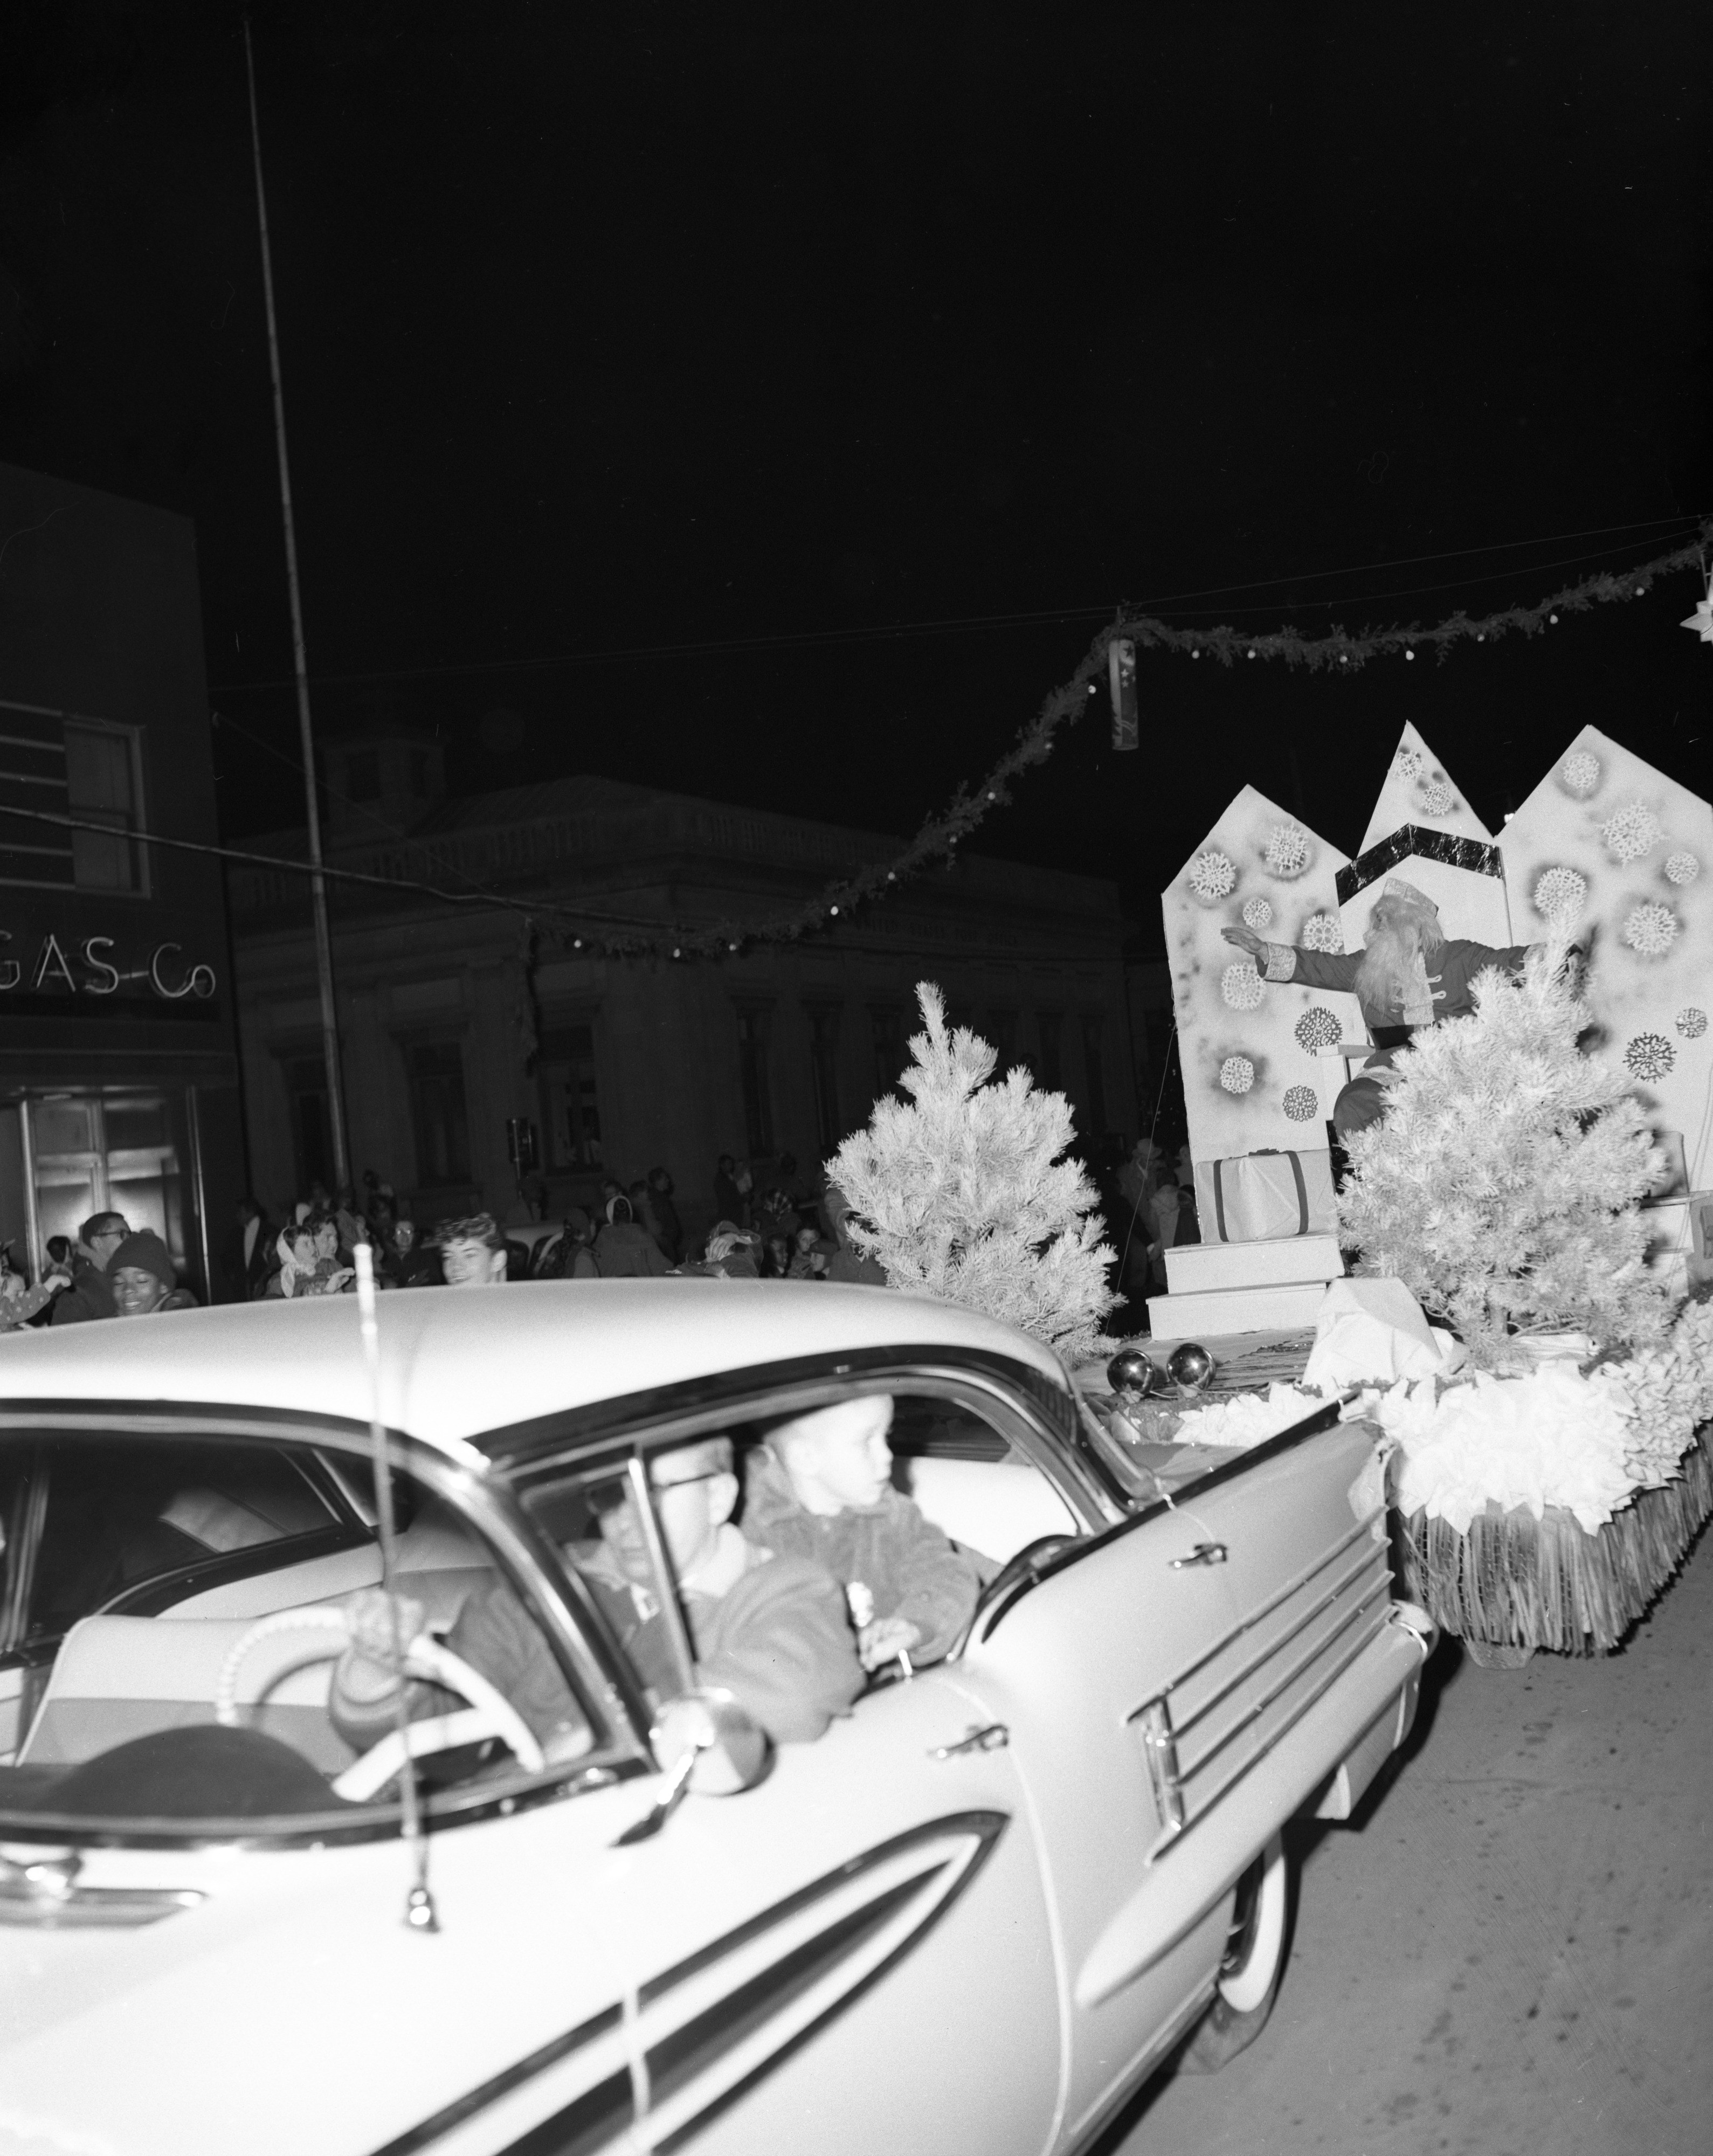 Santa joins the Ypsilanti Christmas parade, December 1957 image